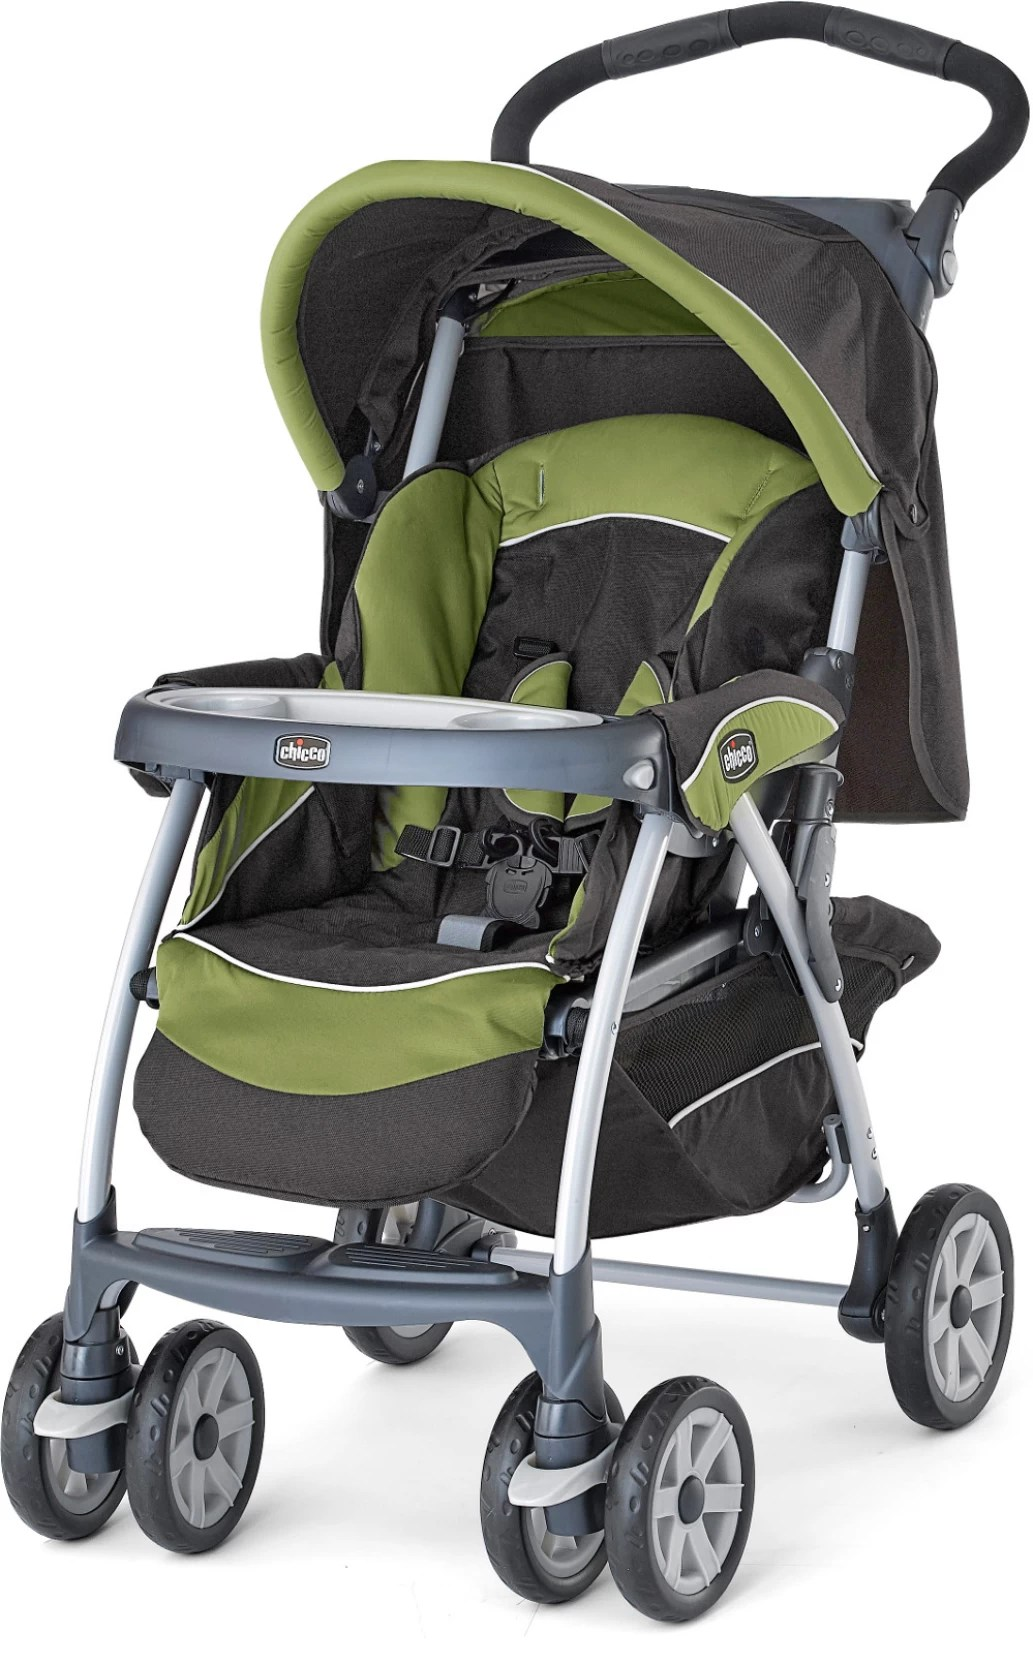 Irresistible Years Co Cortina Cx Travel System Green Co Cortina Cx Travel System Red Co Cortina Stroller Add To Cart Co Cortina Stroller Stroller Buy Stroller baby Chicco Cortina Cx Travel System